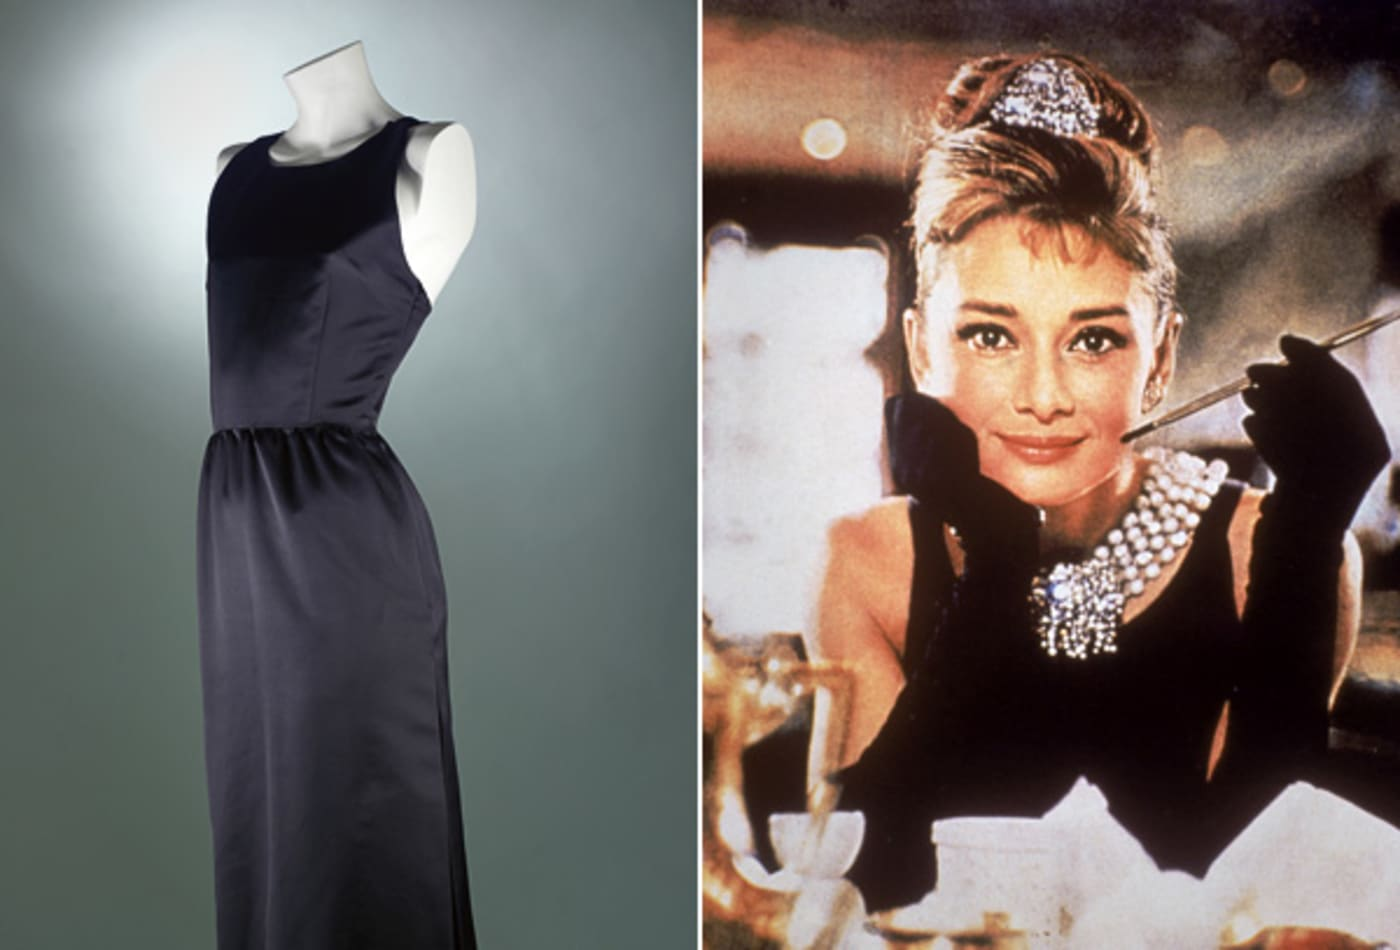 Breakfast-at-Tiffanys-Where-Have-I-Seen-That-Outfit-CNBC.jpg